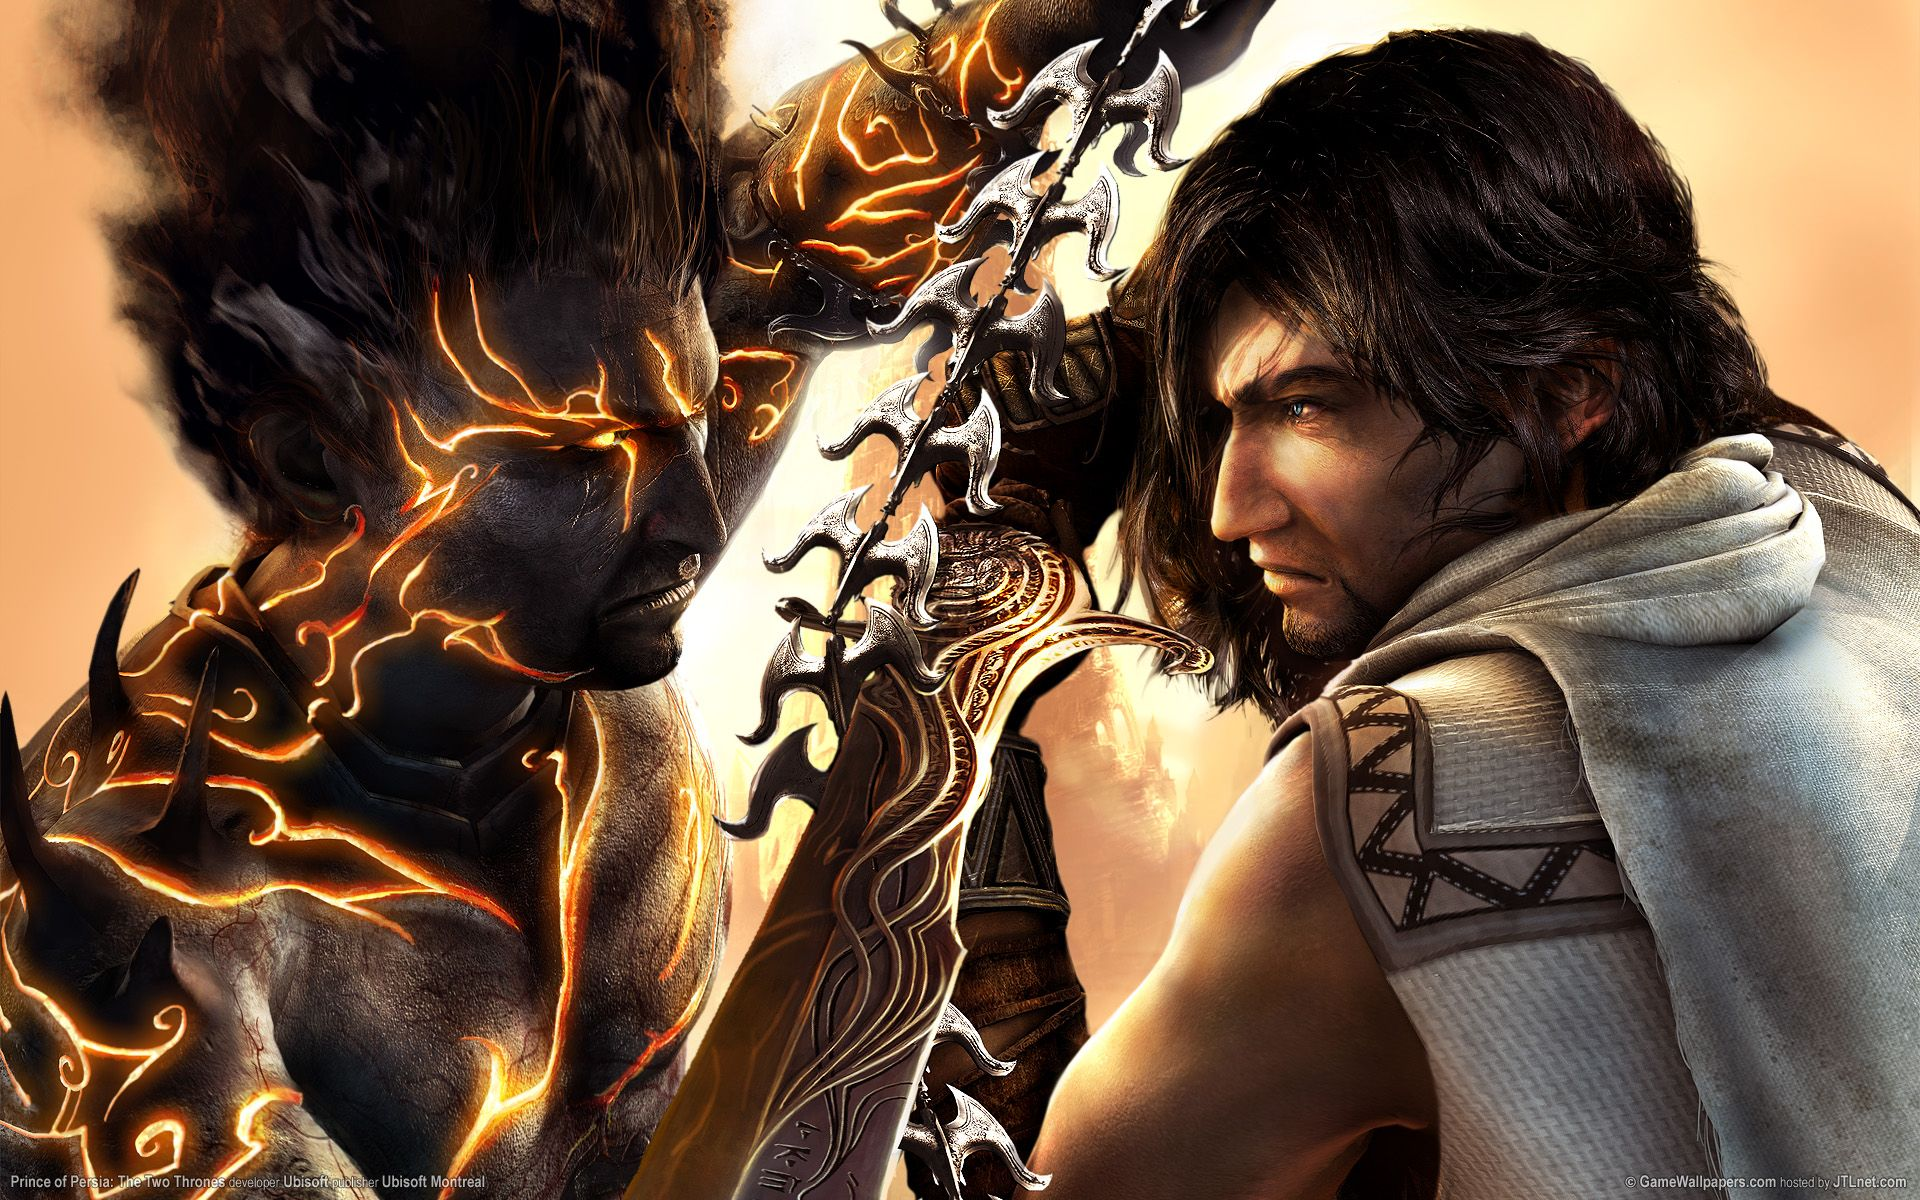 Download Prince of Persia The Two Thrones PC Game Torrent